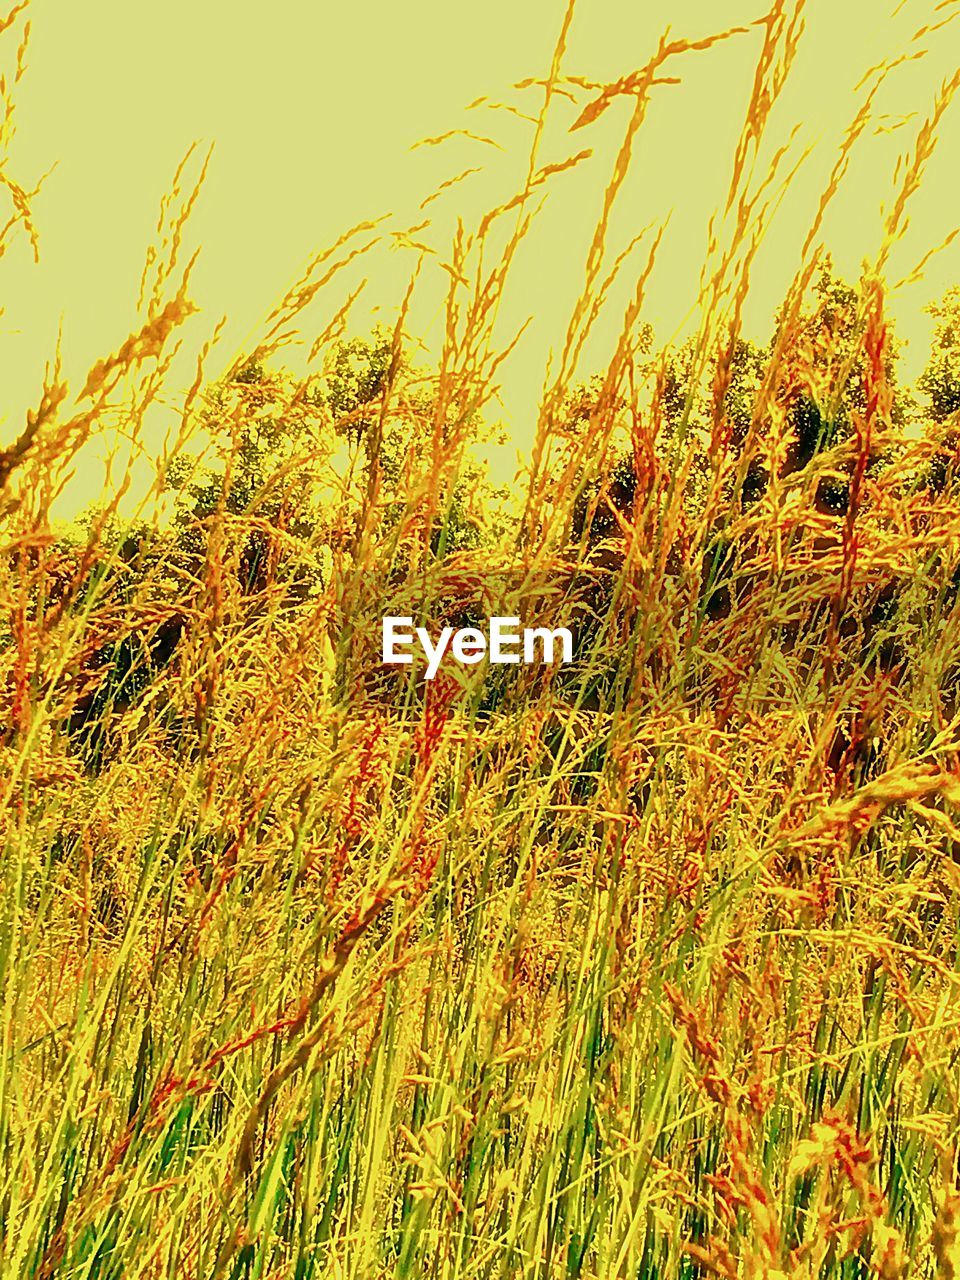 nature, growth, field, grass, tranquil scene, no people, outdoors, agriculture, tranquility, plant, summer, beauty in nature, scenics, day, sky, wheat, close-up